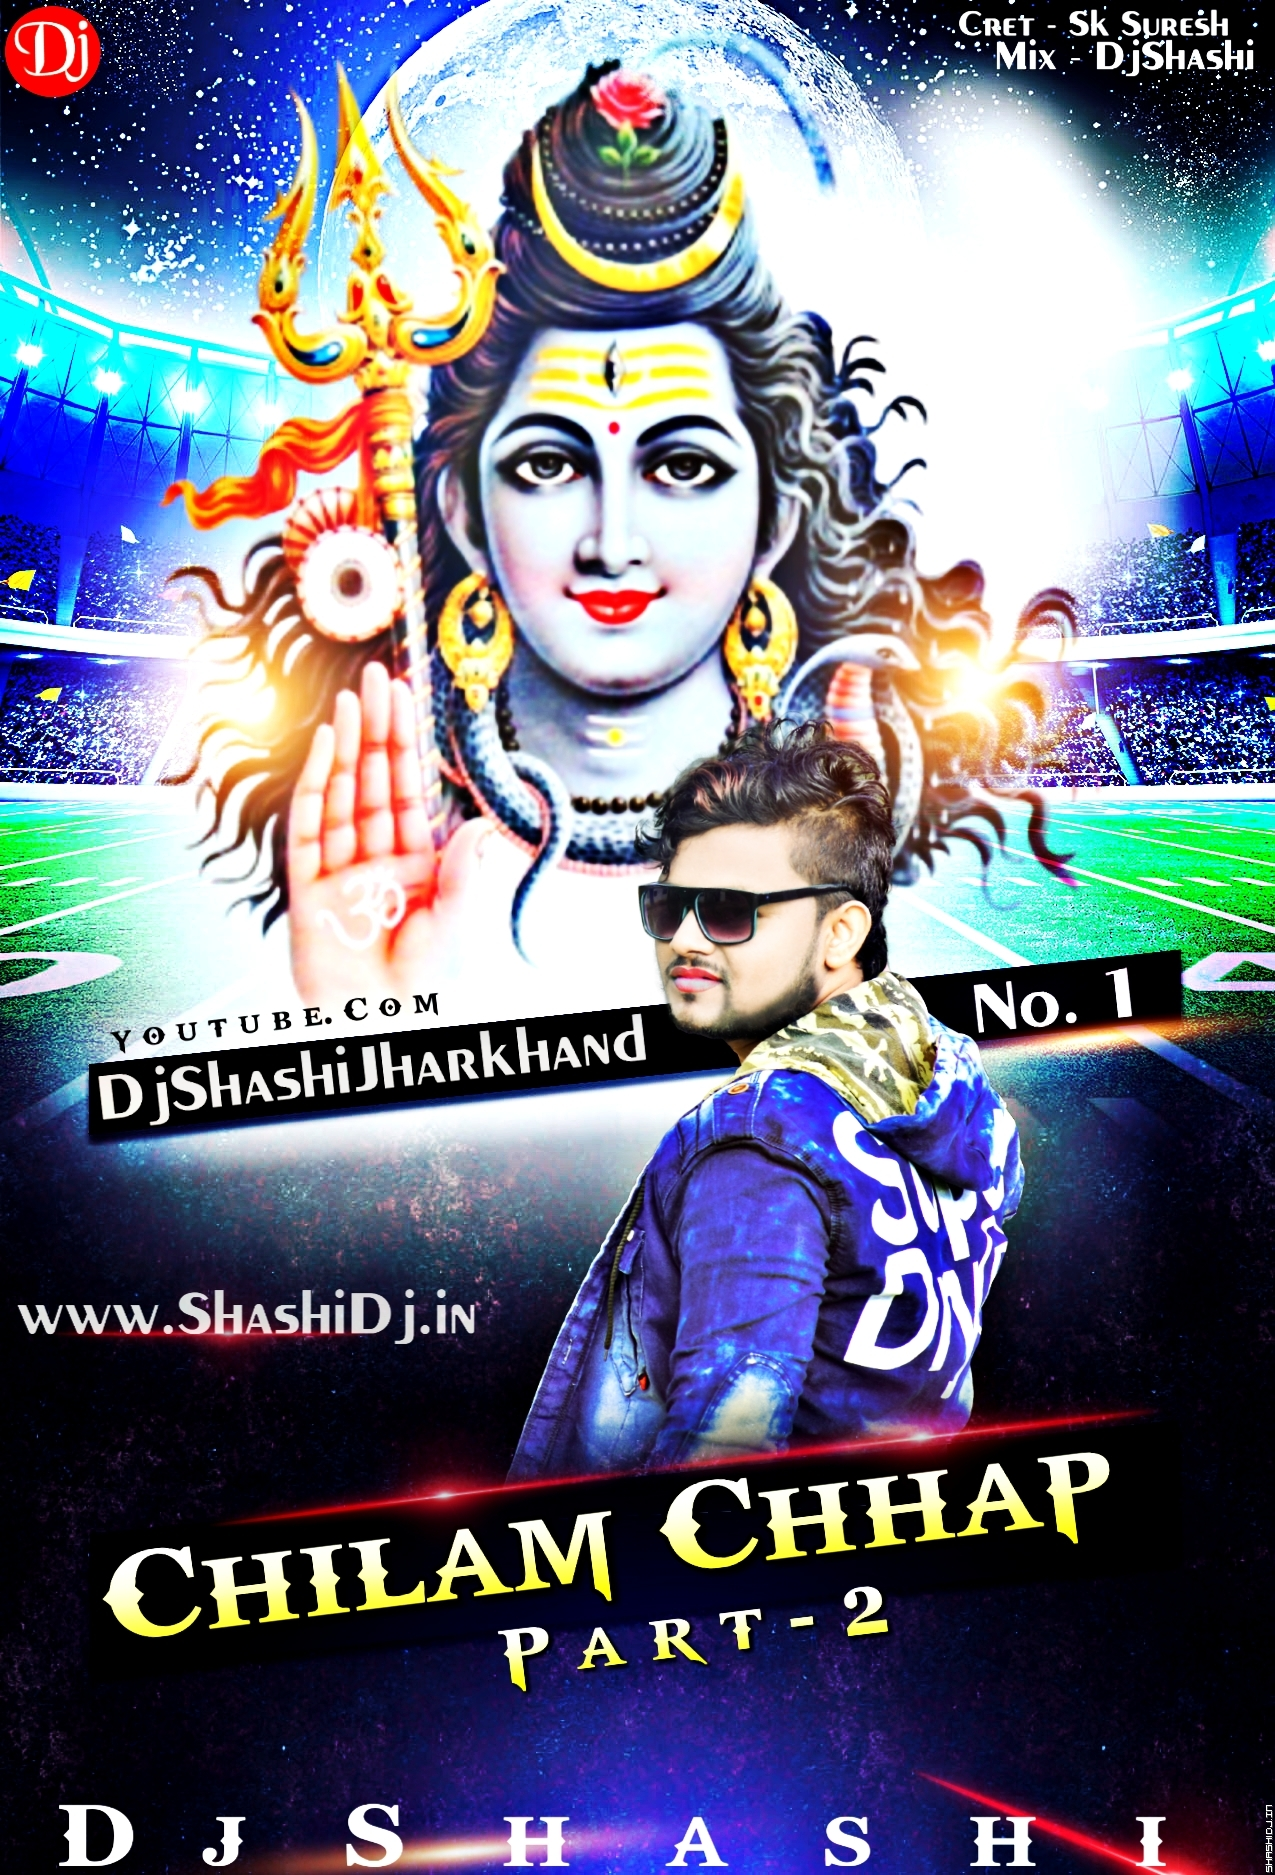 chilam chhap 2--Fully Competition Mix By Dj SHashi.mp3